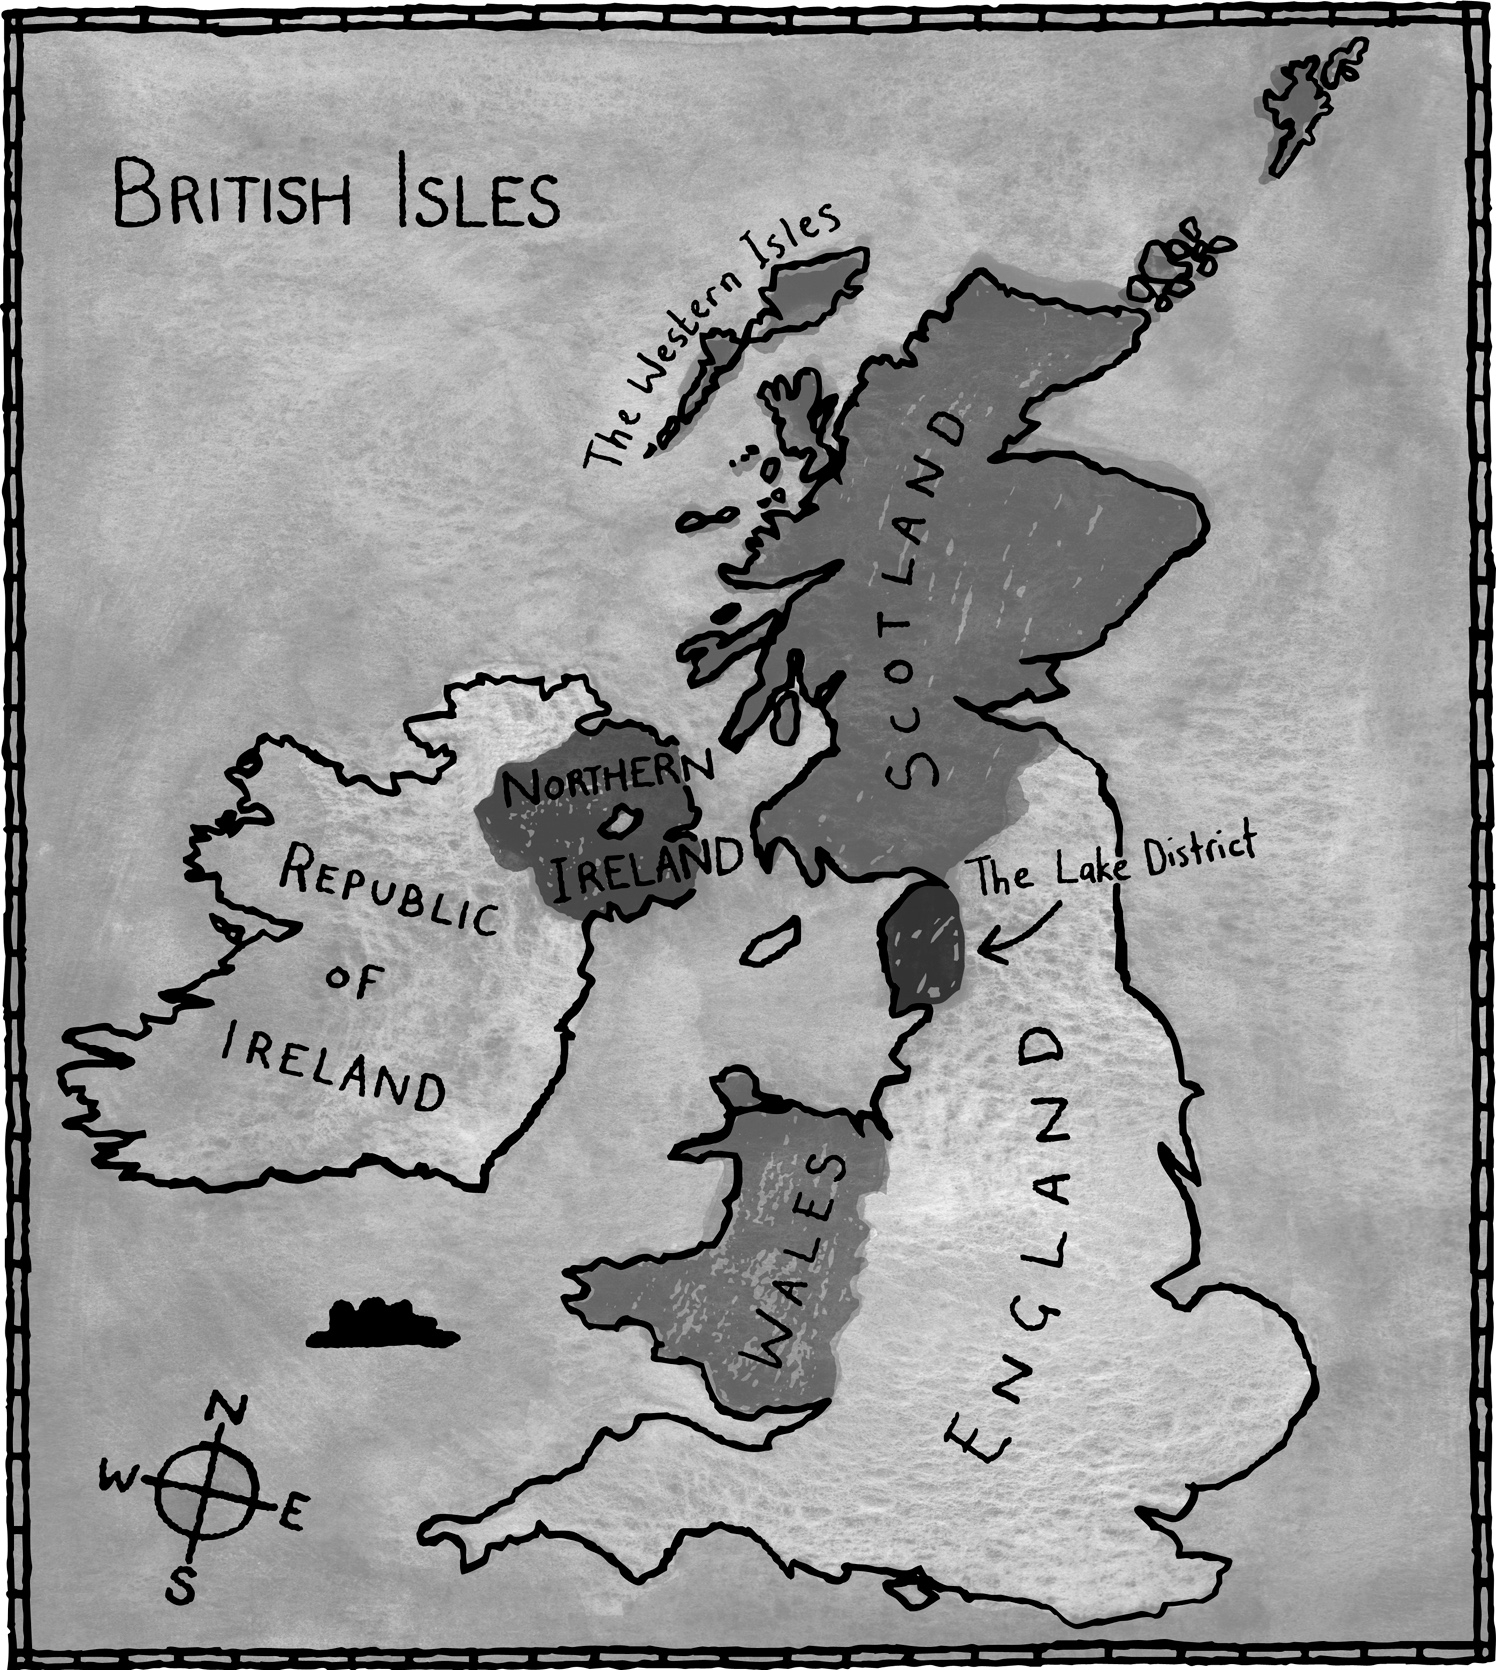 The British Isles Map